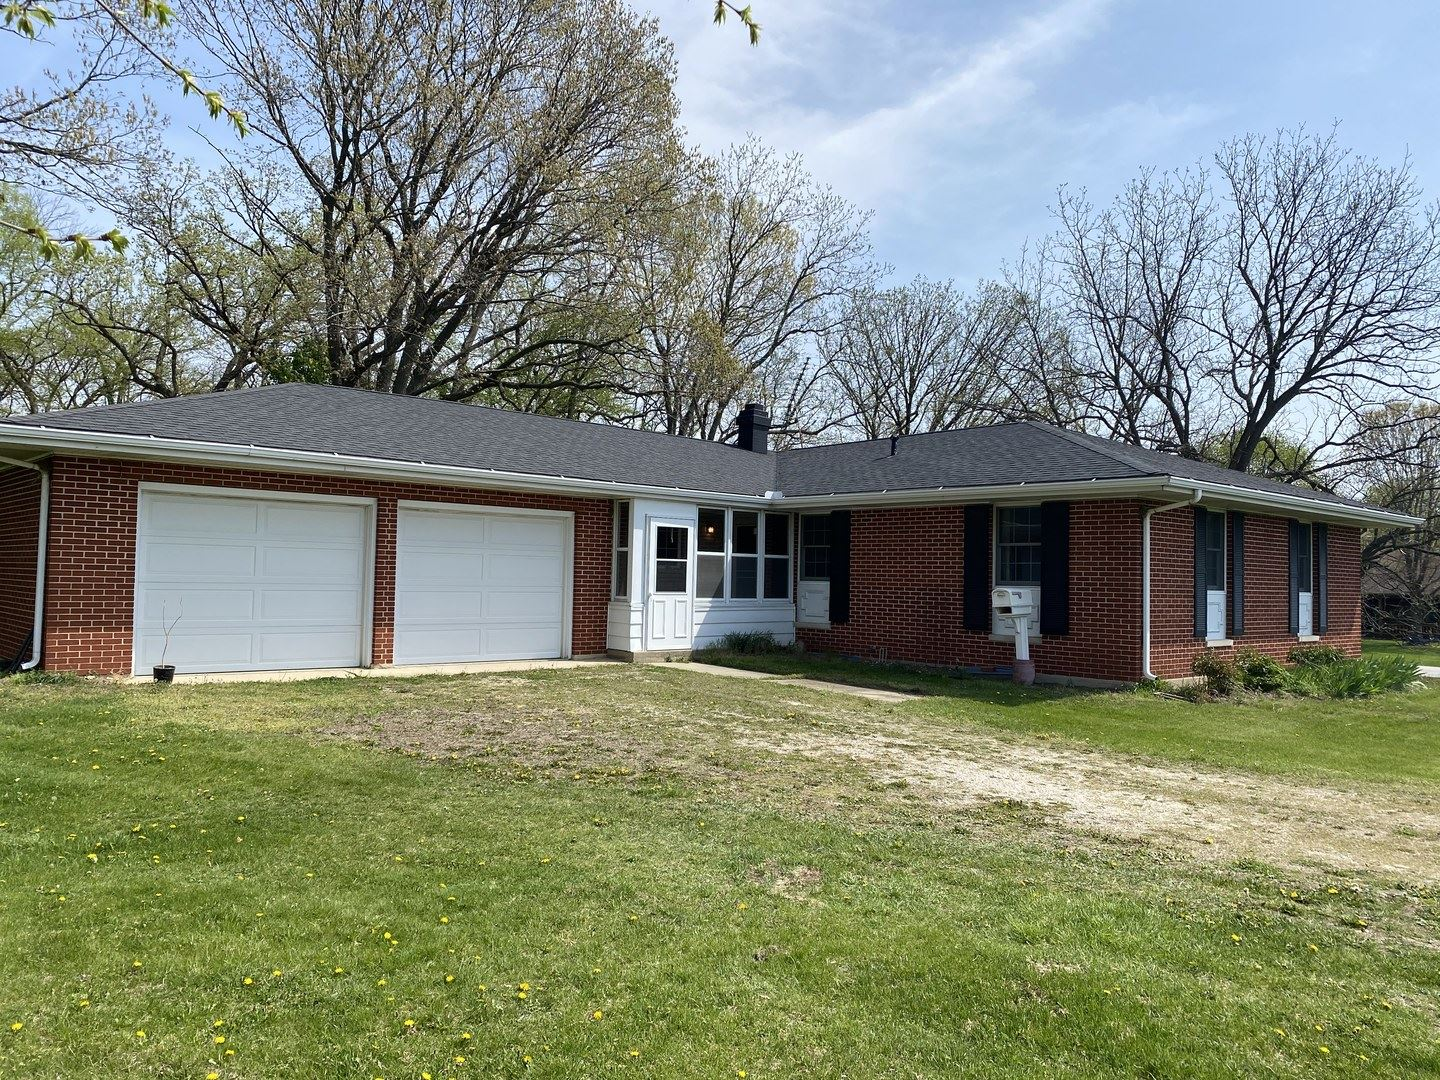 Photo of 22560 S River Road, Shorewood, IL 60404 (MLS # 11067864)